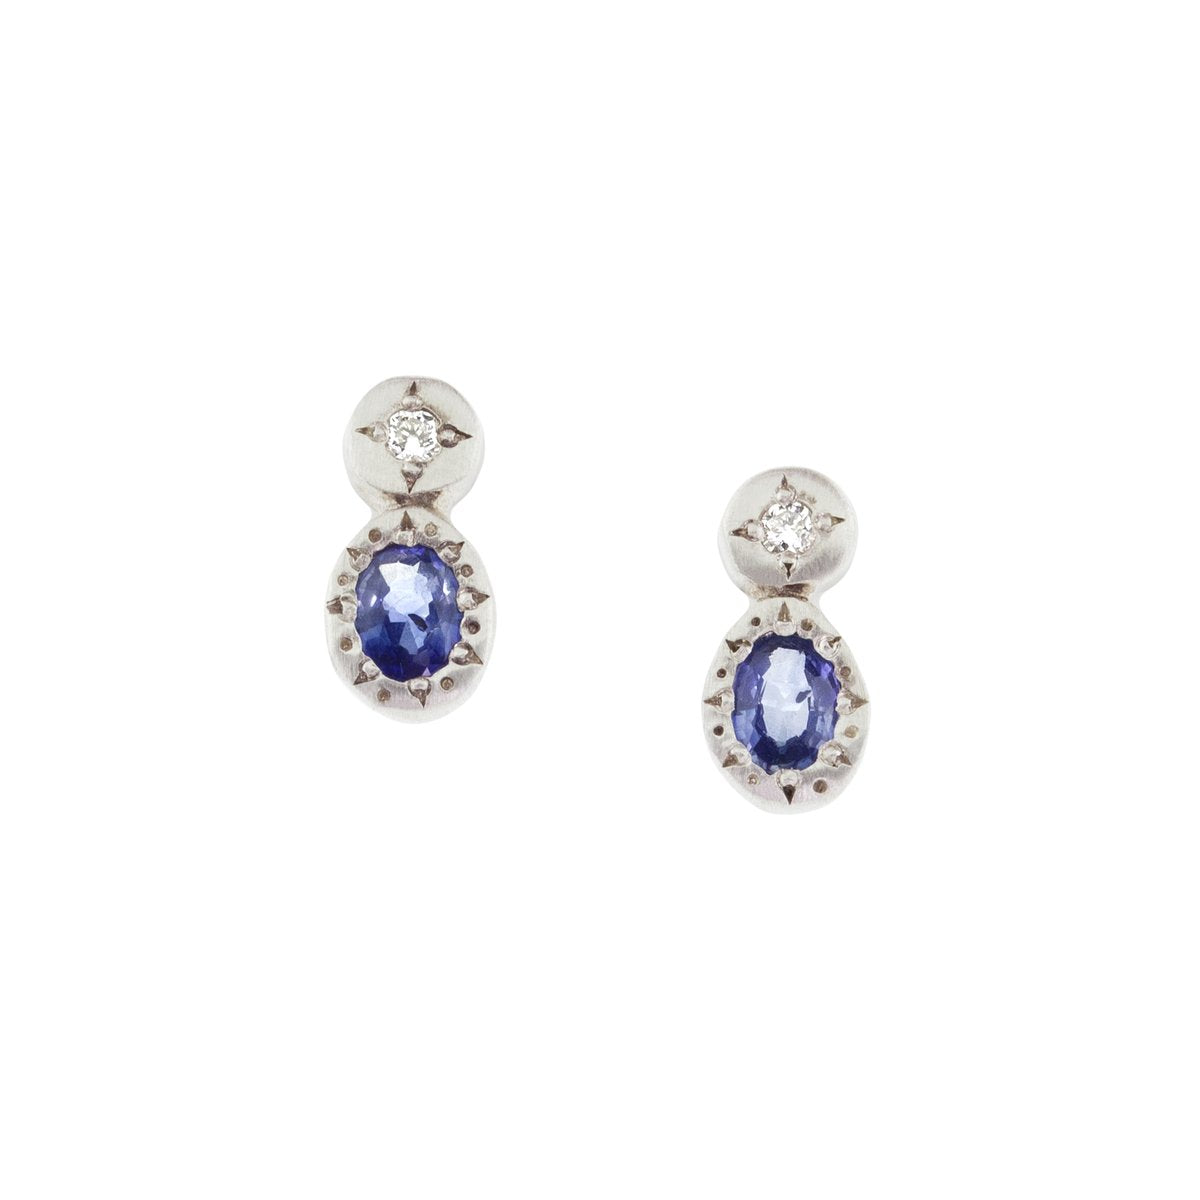 Oval and Round Sapphire Studs | Art + Soul Gallery